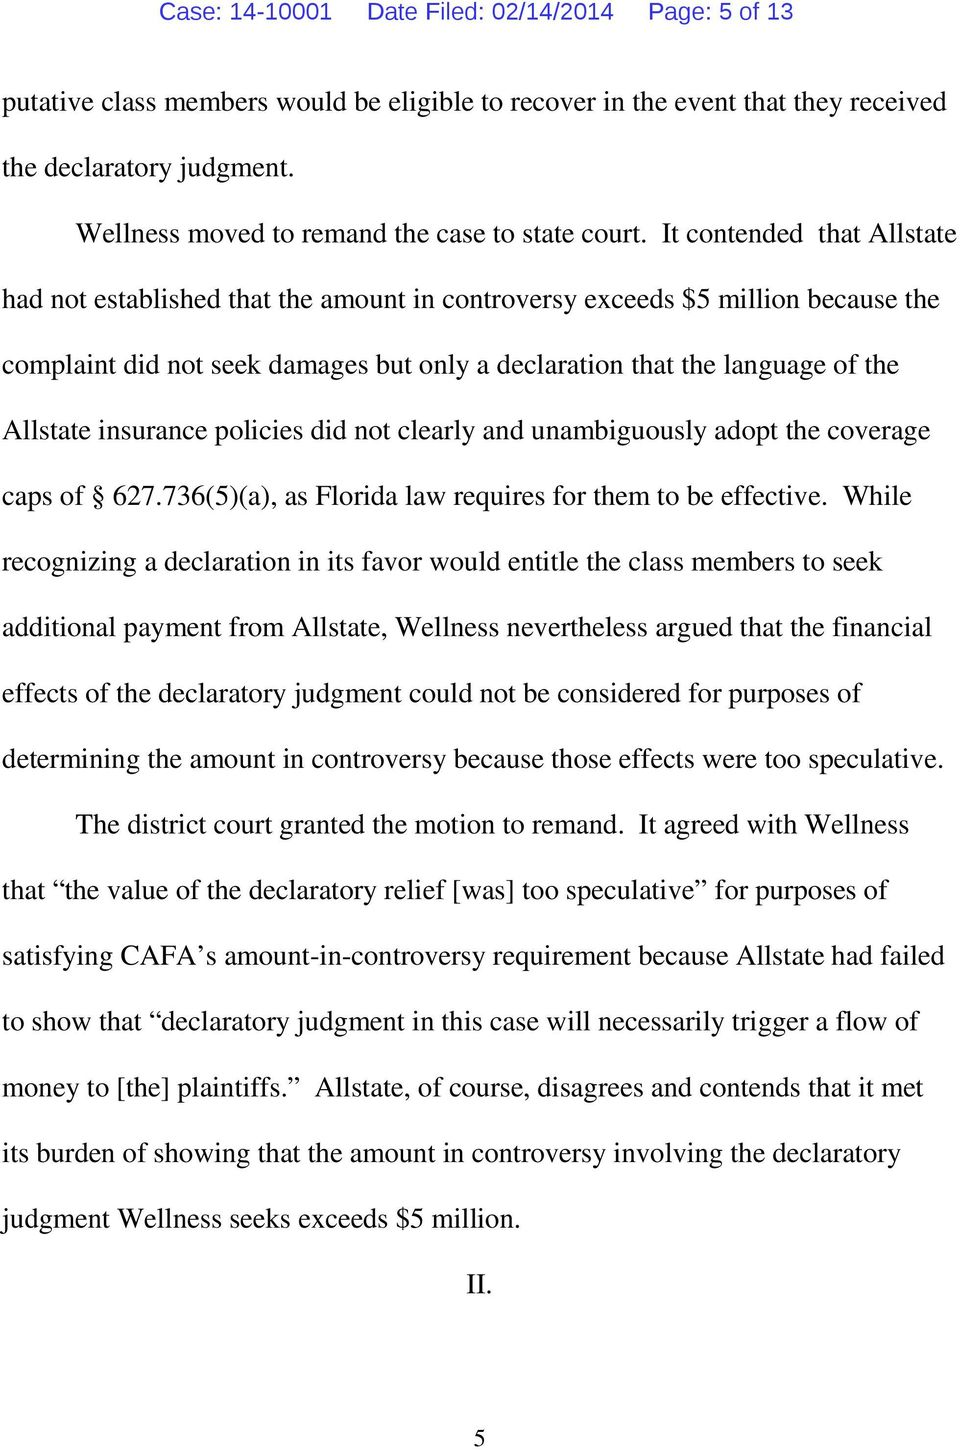 It contended that Allstate had not established that the amount in controversy exceeds $5 million because the complaint did not seek damages but only a declaration that the language of the Allstate